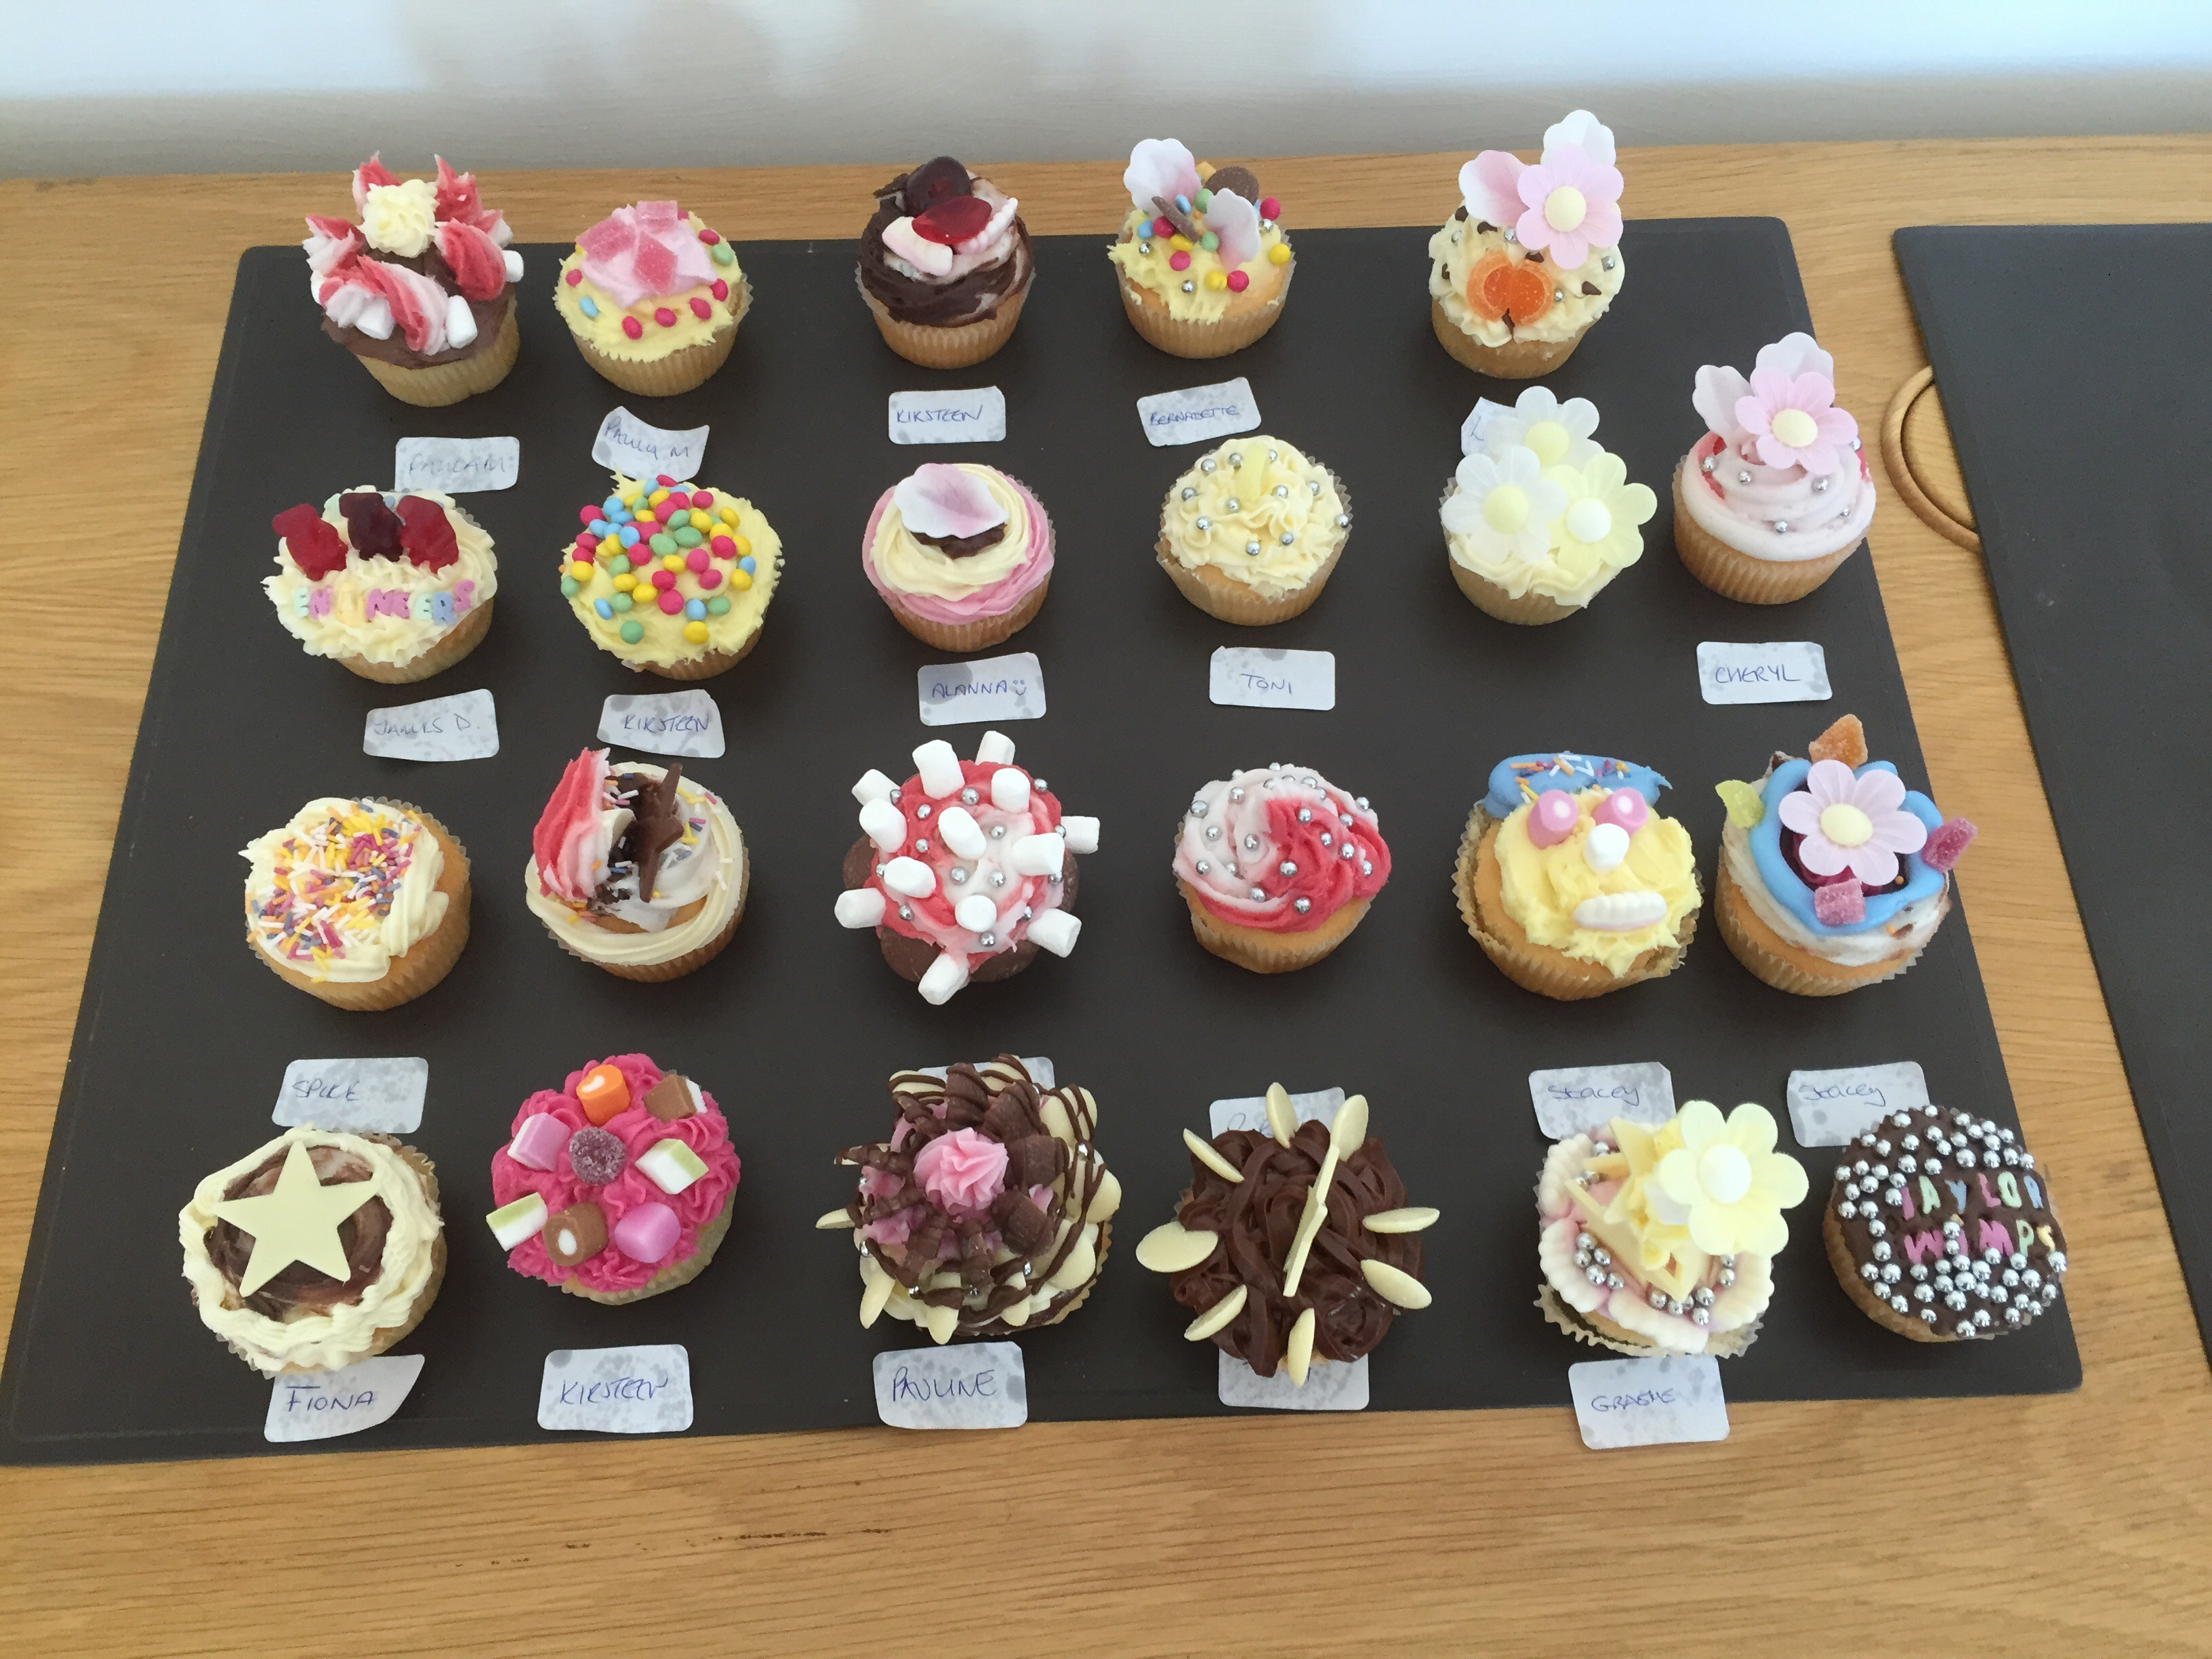 Taylor Wimpey Macmillan Coffee Morning cake competition